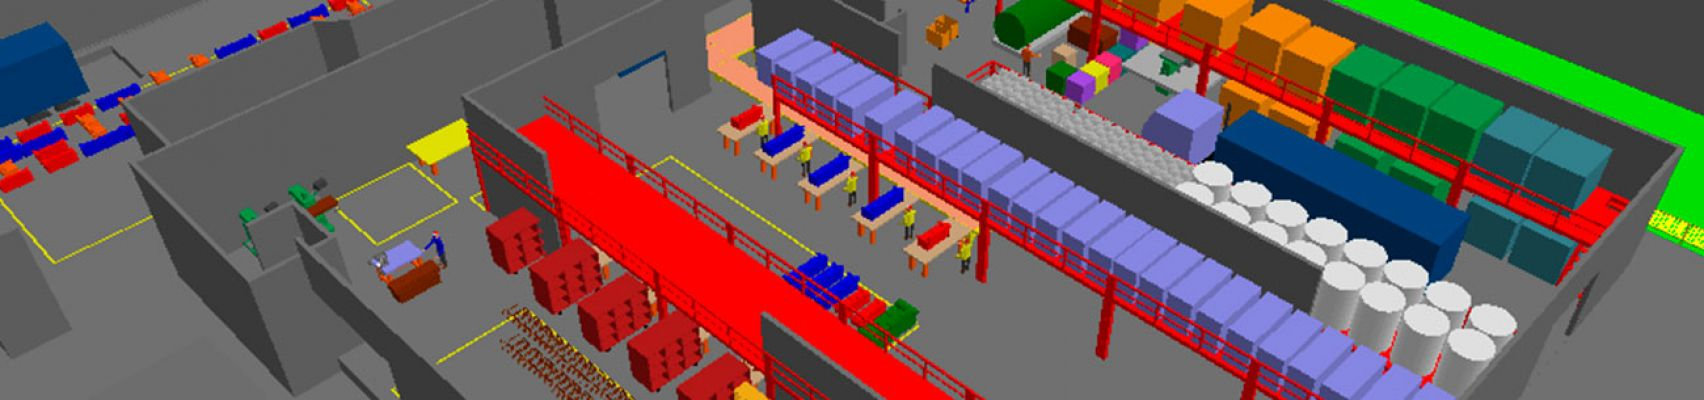 Digital, virtual, and efficient factories